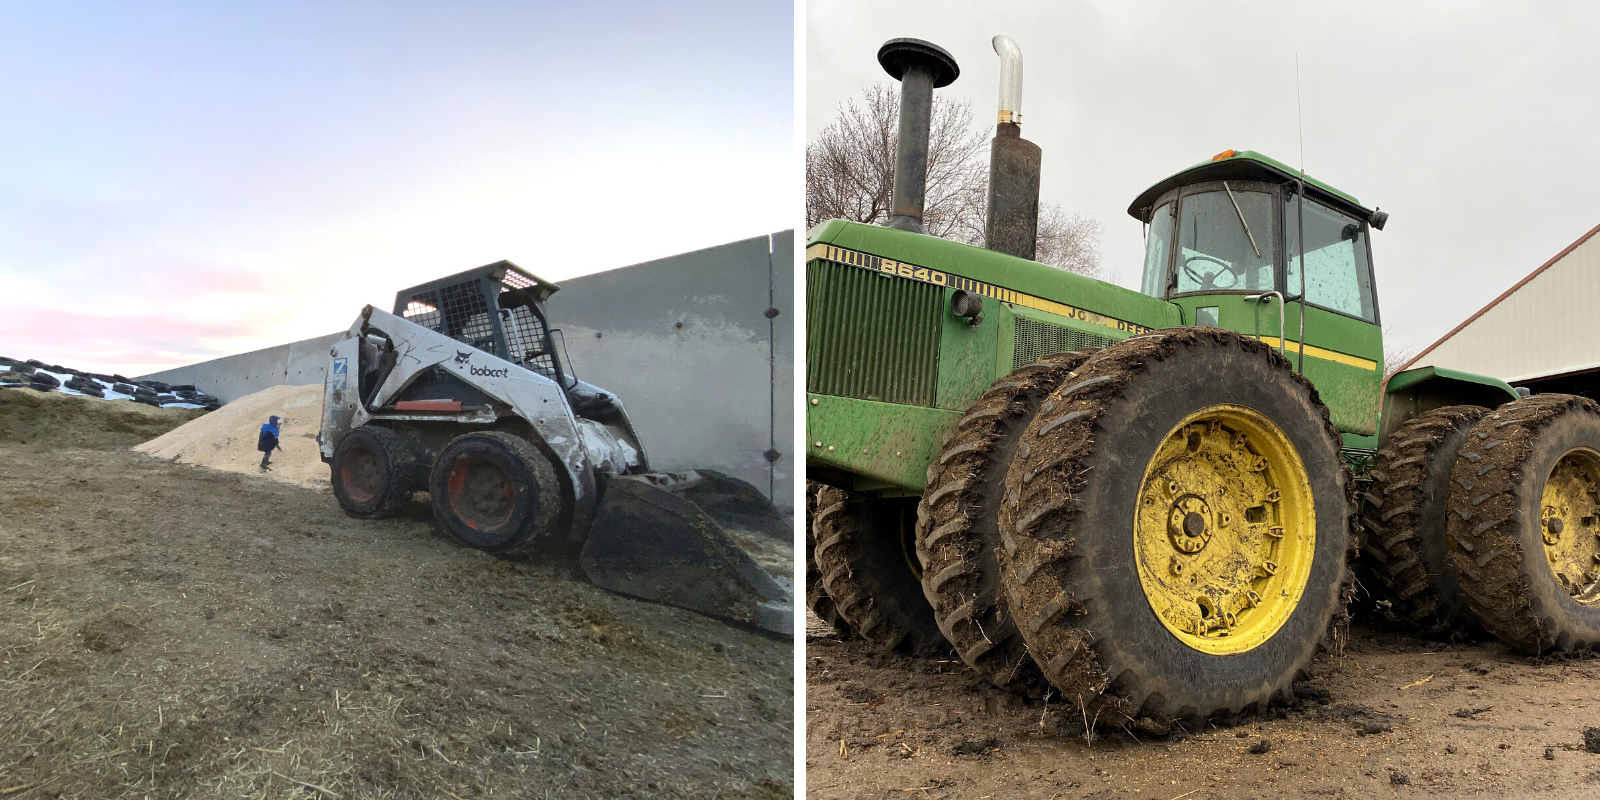 Farm equipment - skid steer & John Deere tractor